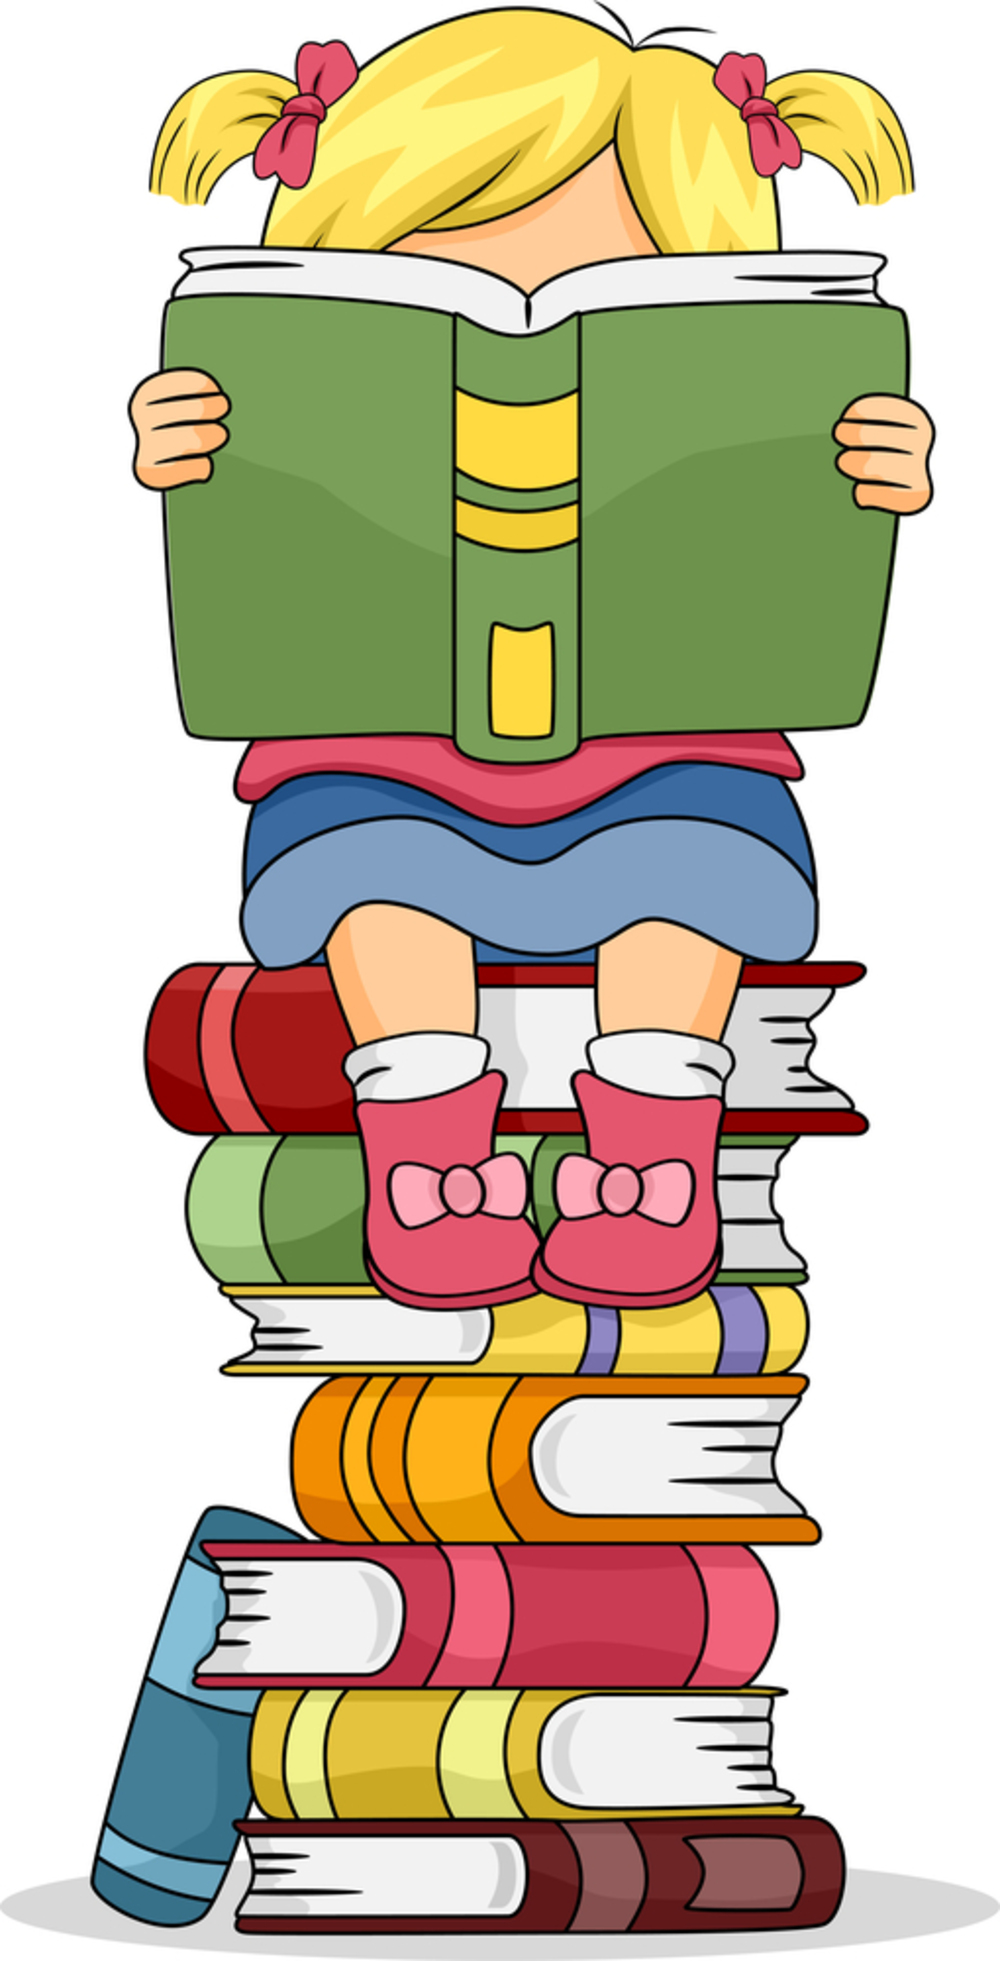 Cover clipart comprehension How reading_comprehension Comprehension Reading to